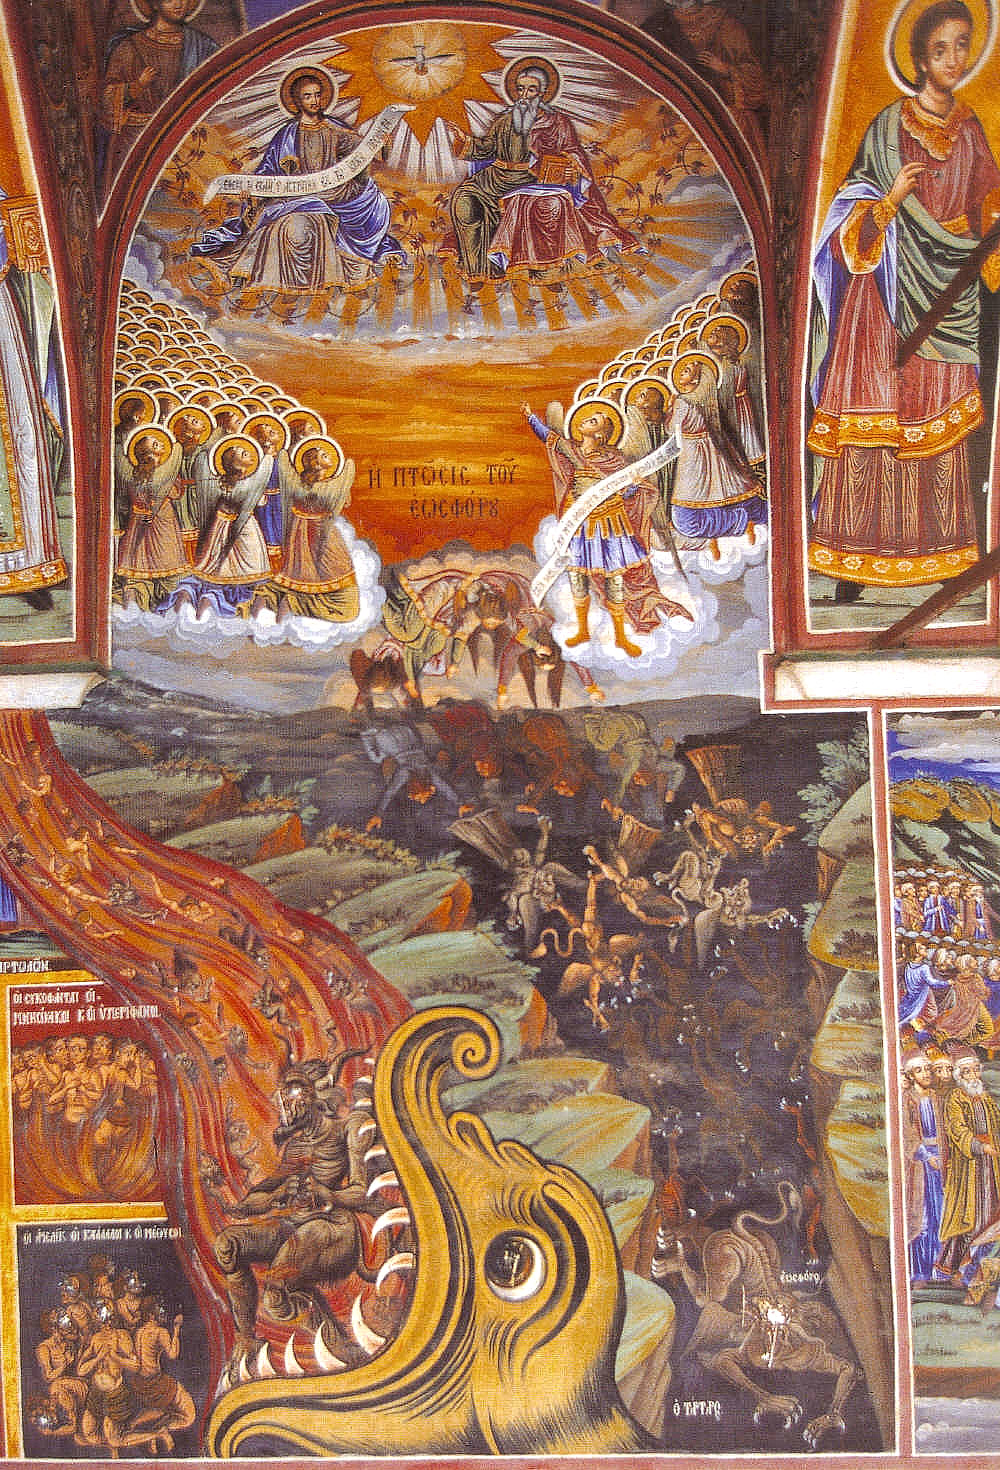 The Last Judgment. Fresco, Lavra of St. Athanasius, Mt. Athos. dans images sacrée 38366.b